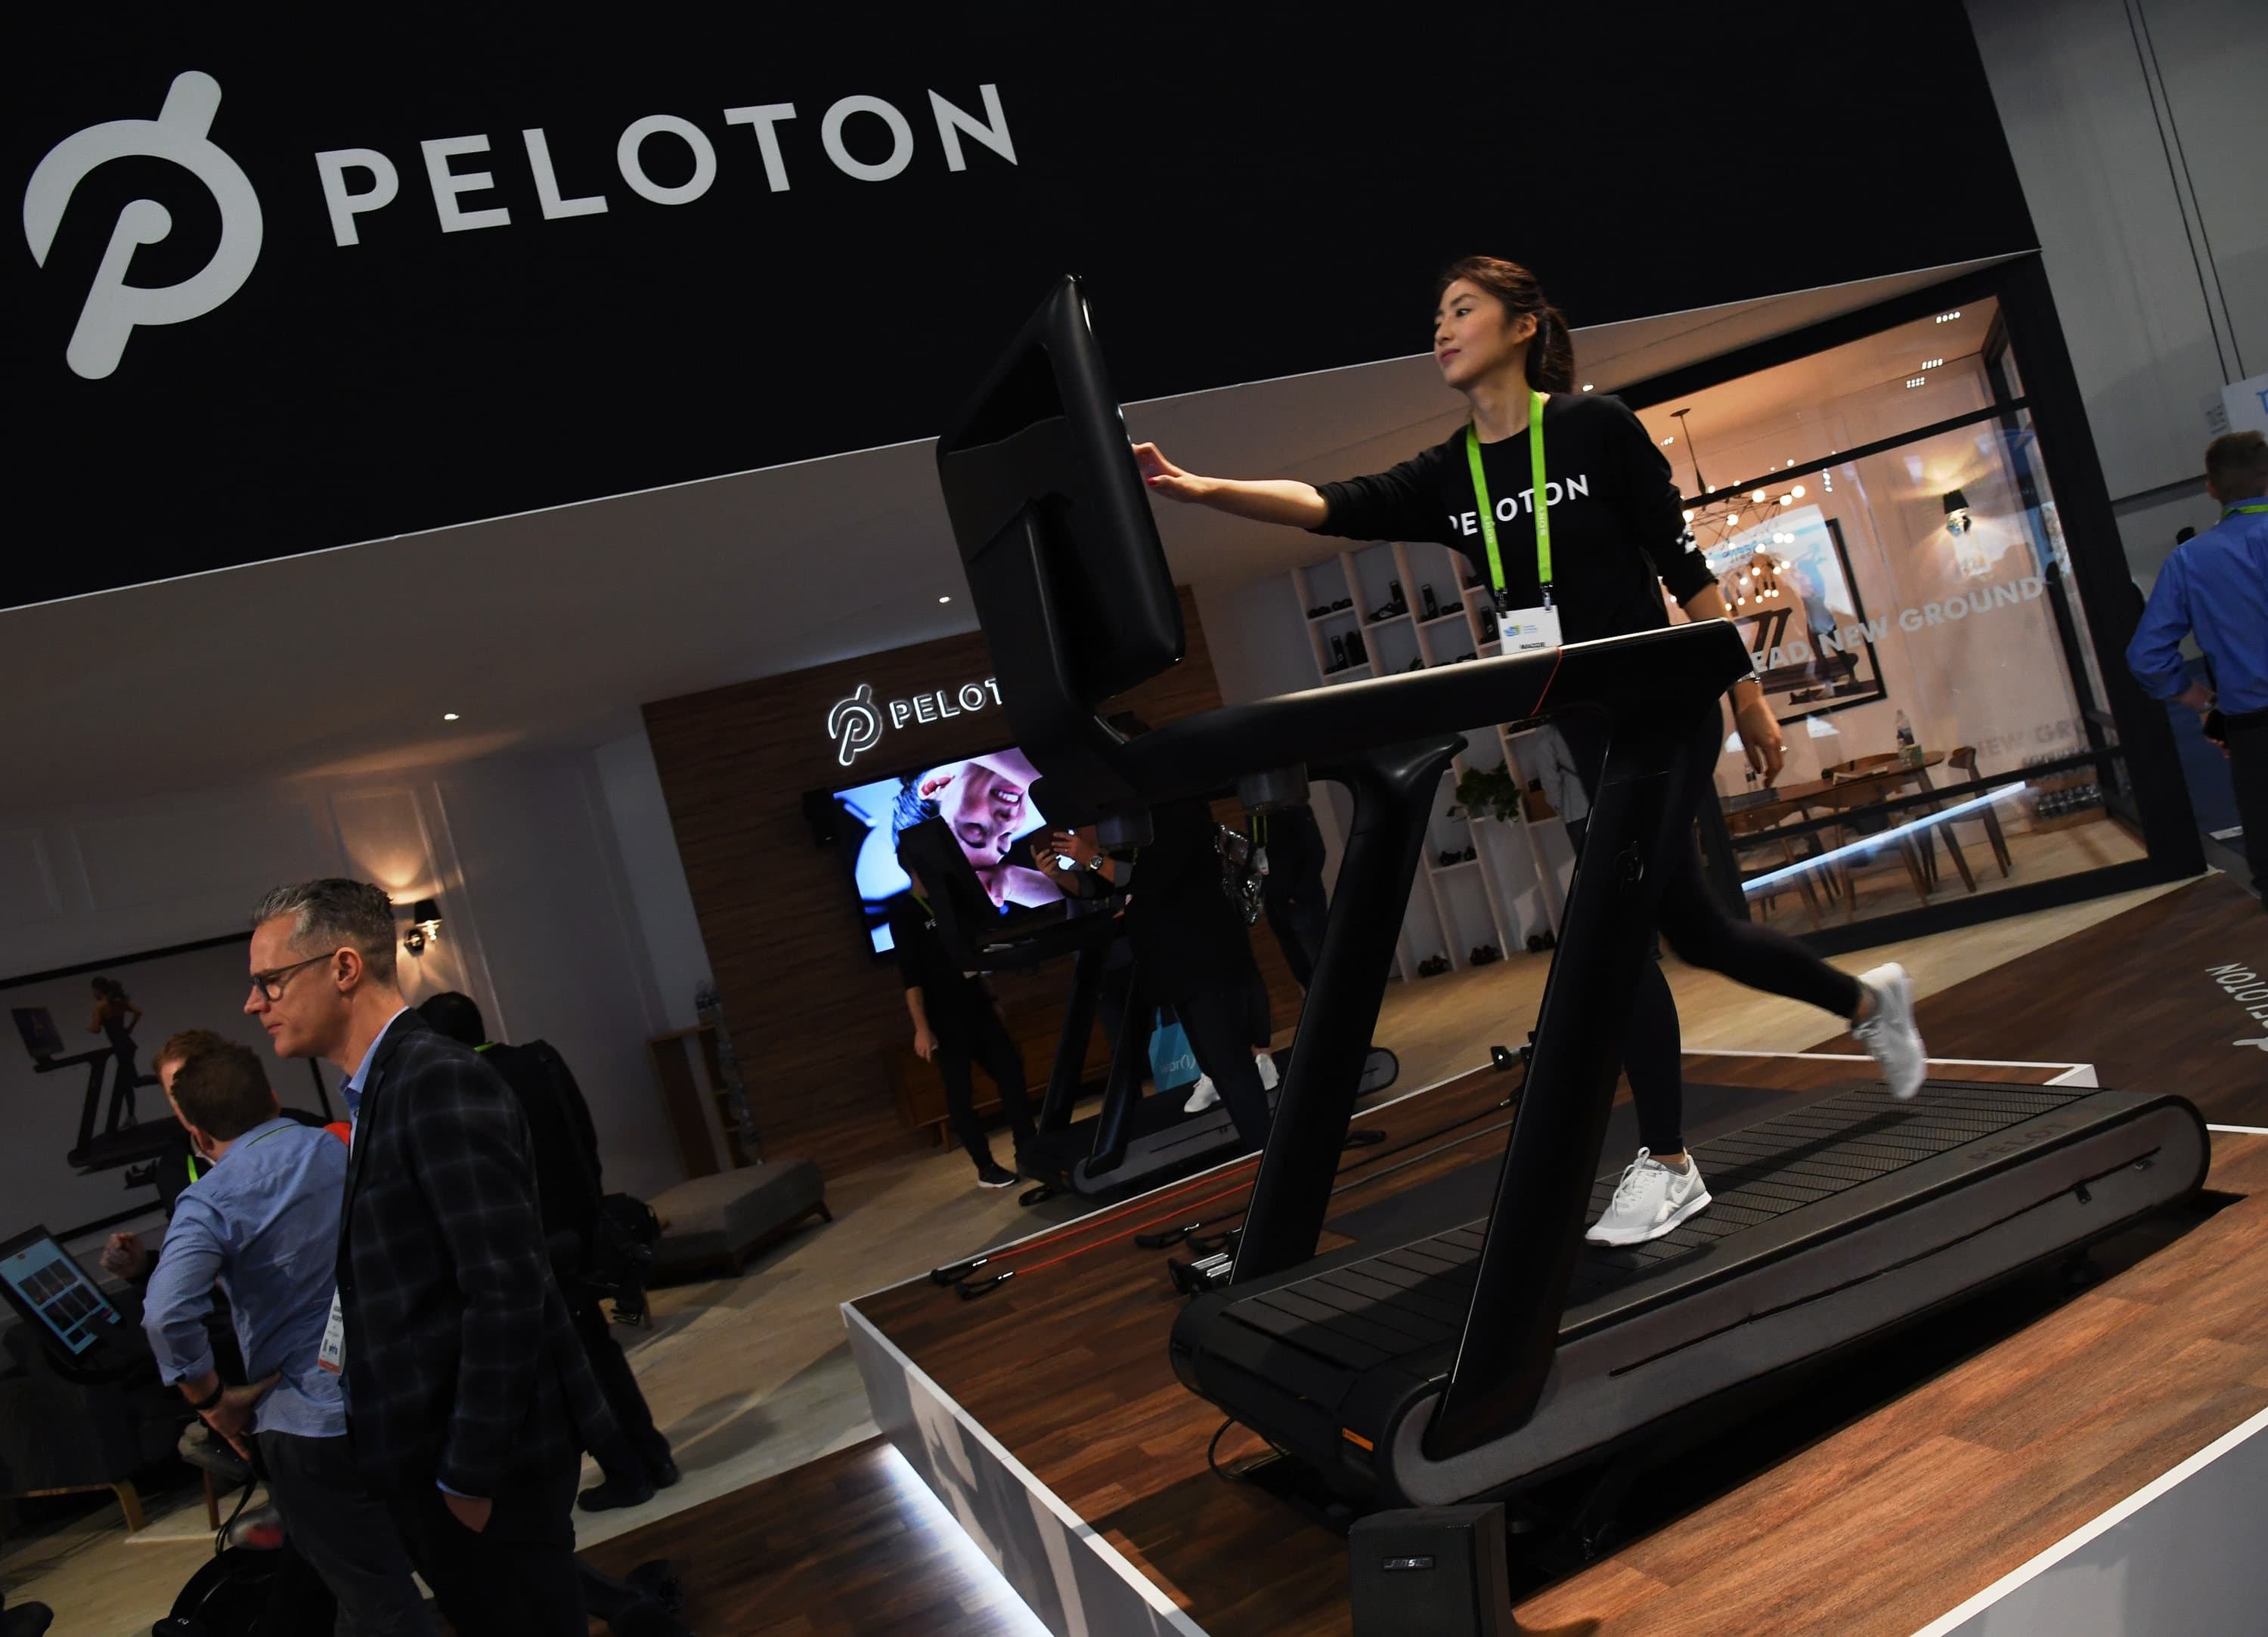 Peloton's clash with agency over safety concerns threatens to tarnish brand